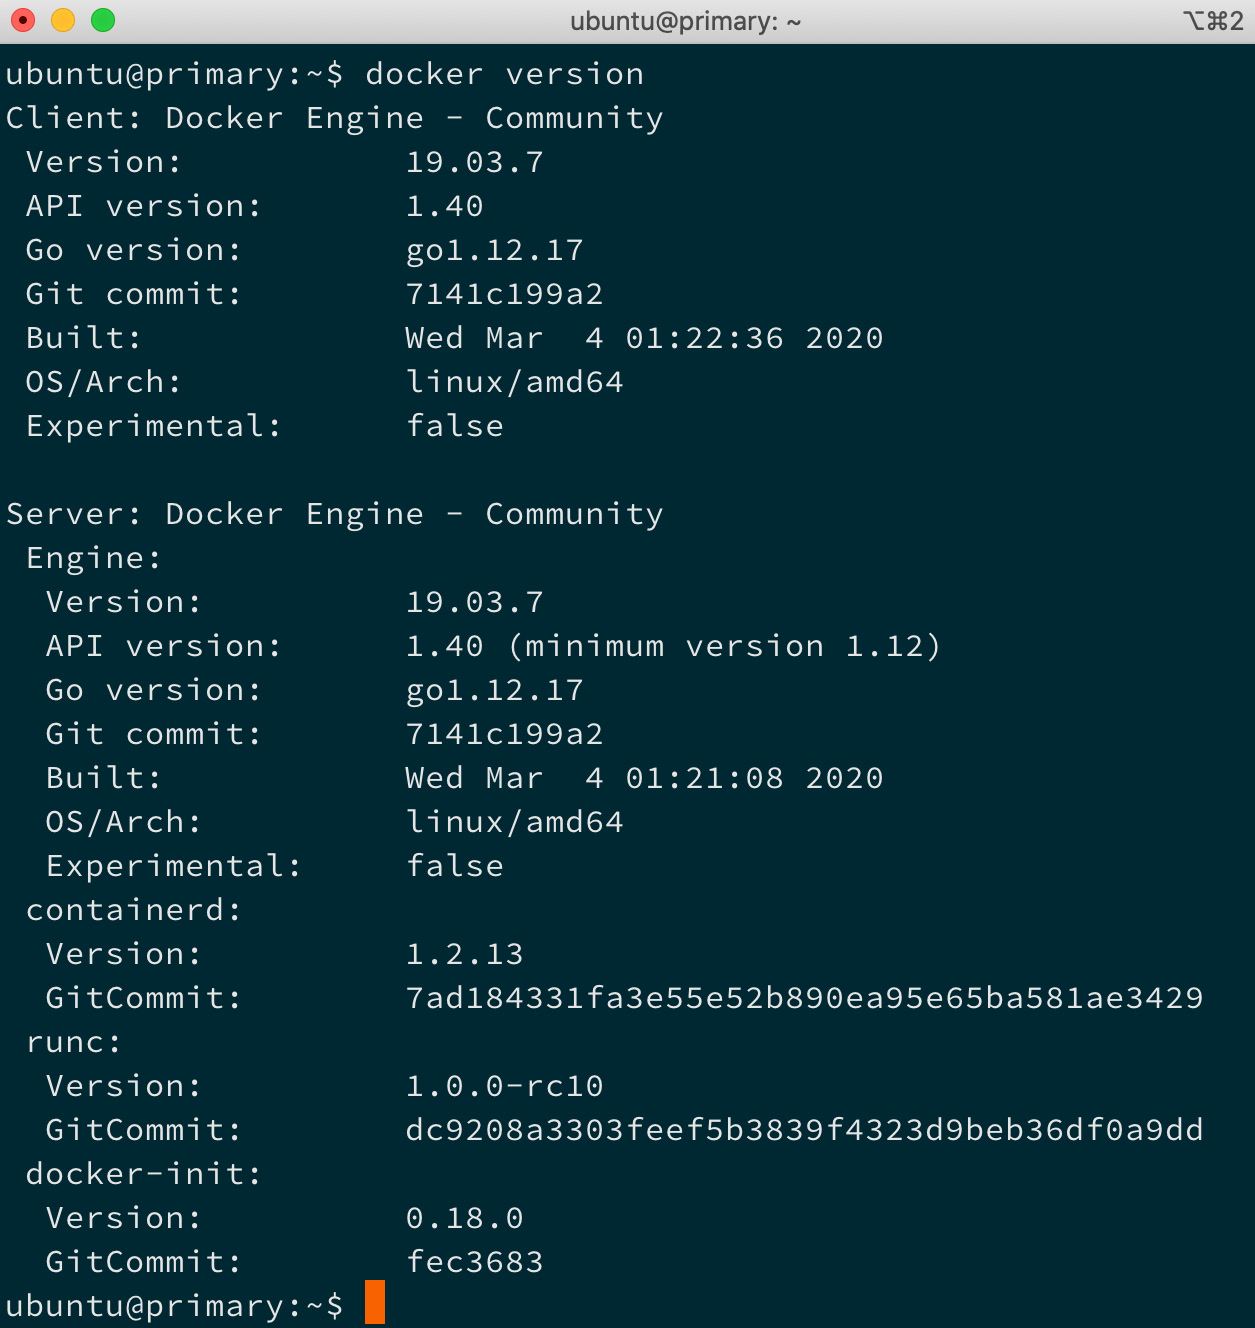 Figure 1.3 – Output of the docker version command showing the version of Docker installed on the system